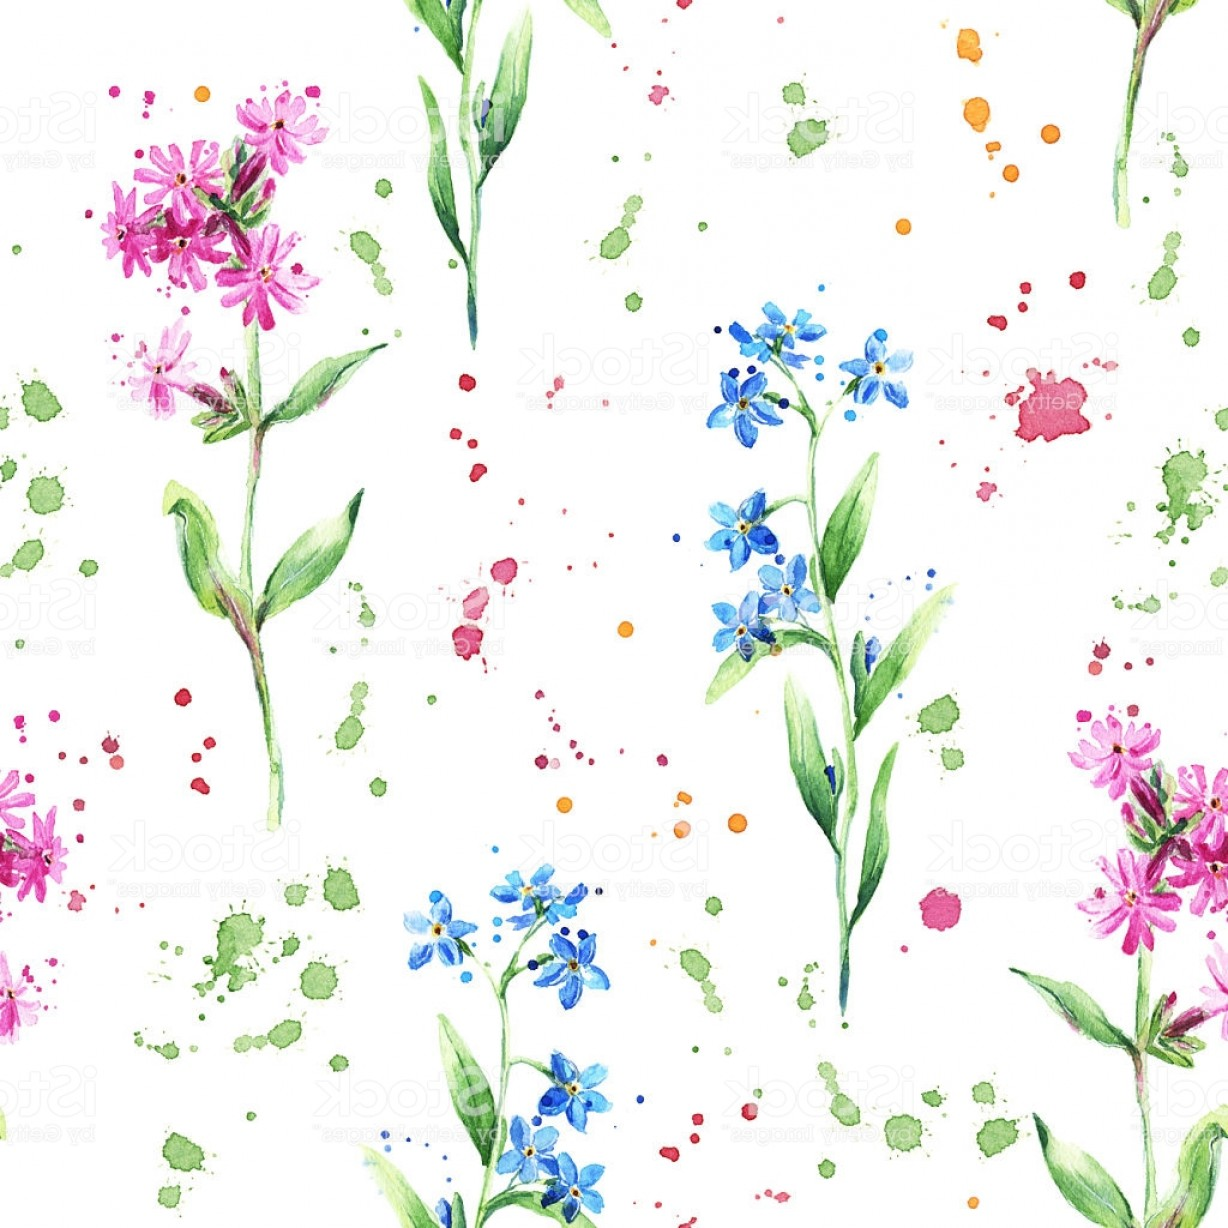 Get For Me Not Flower Watercolor Vector Art: Seamless Floral Pattern With Wild Flowers Forget Me Not Watercolor Gm